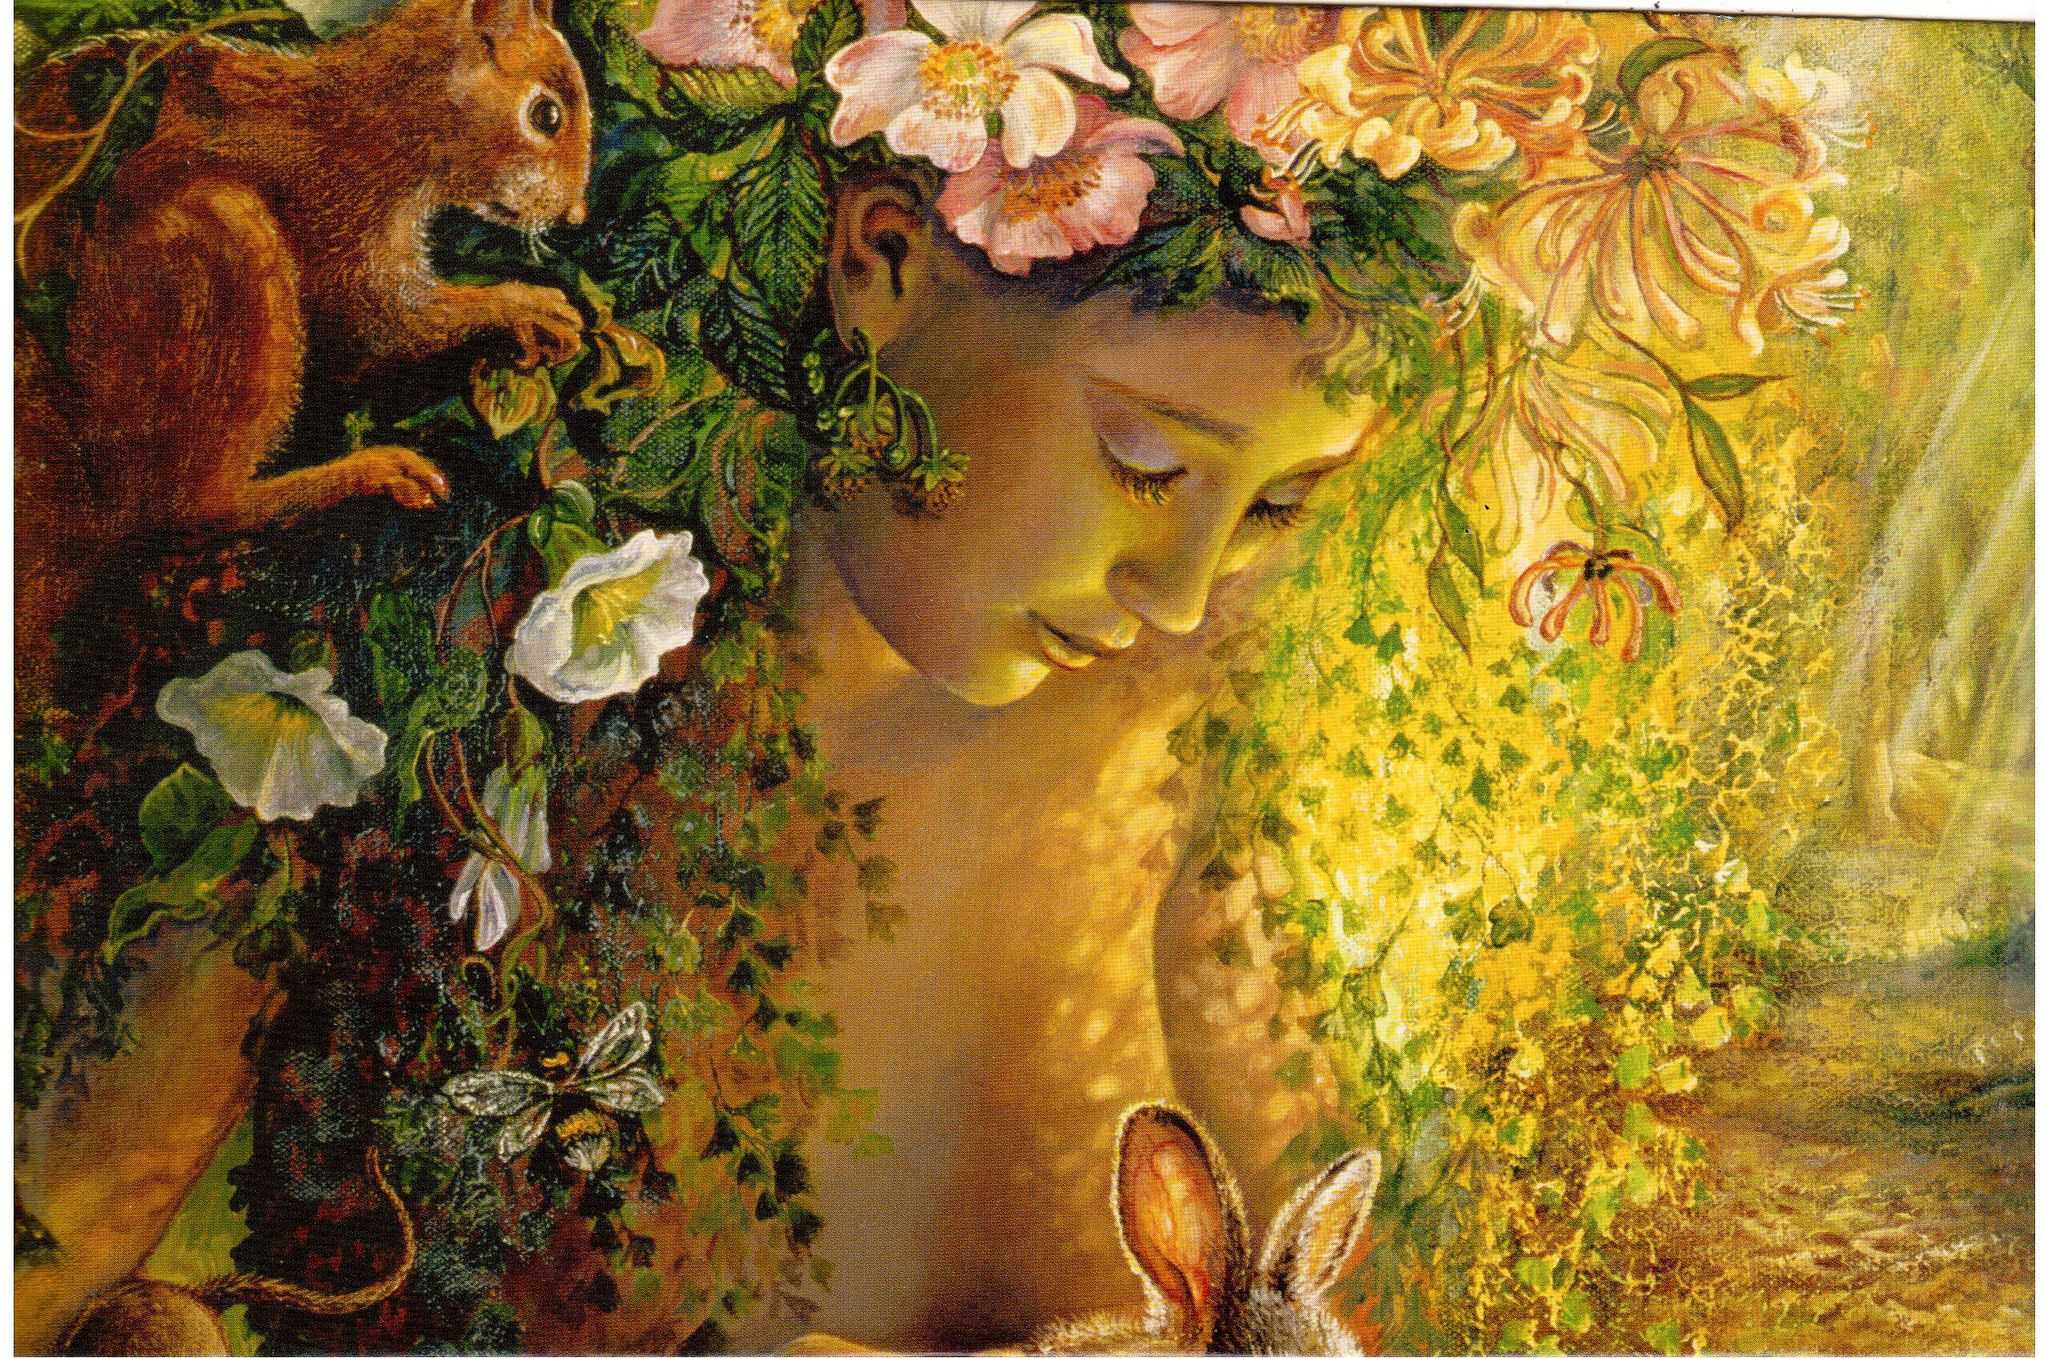 Wood Nymph by Josephine Wall   Wood nymphs and Envelopes